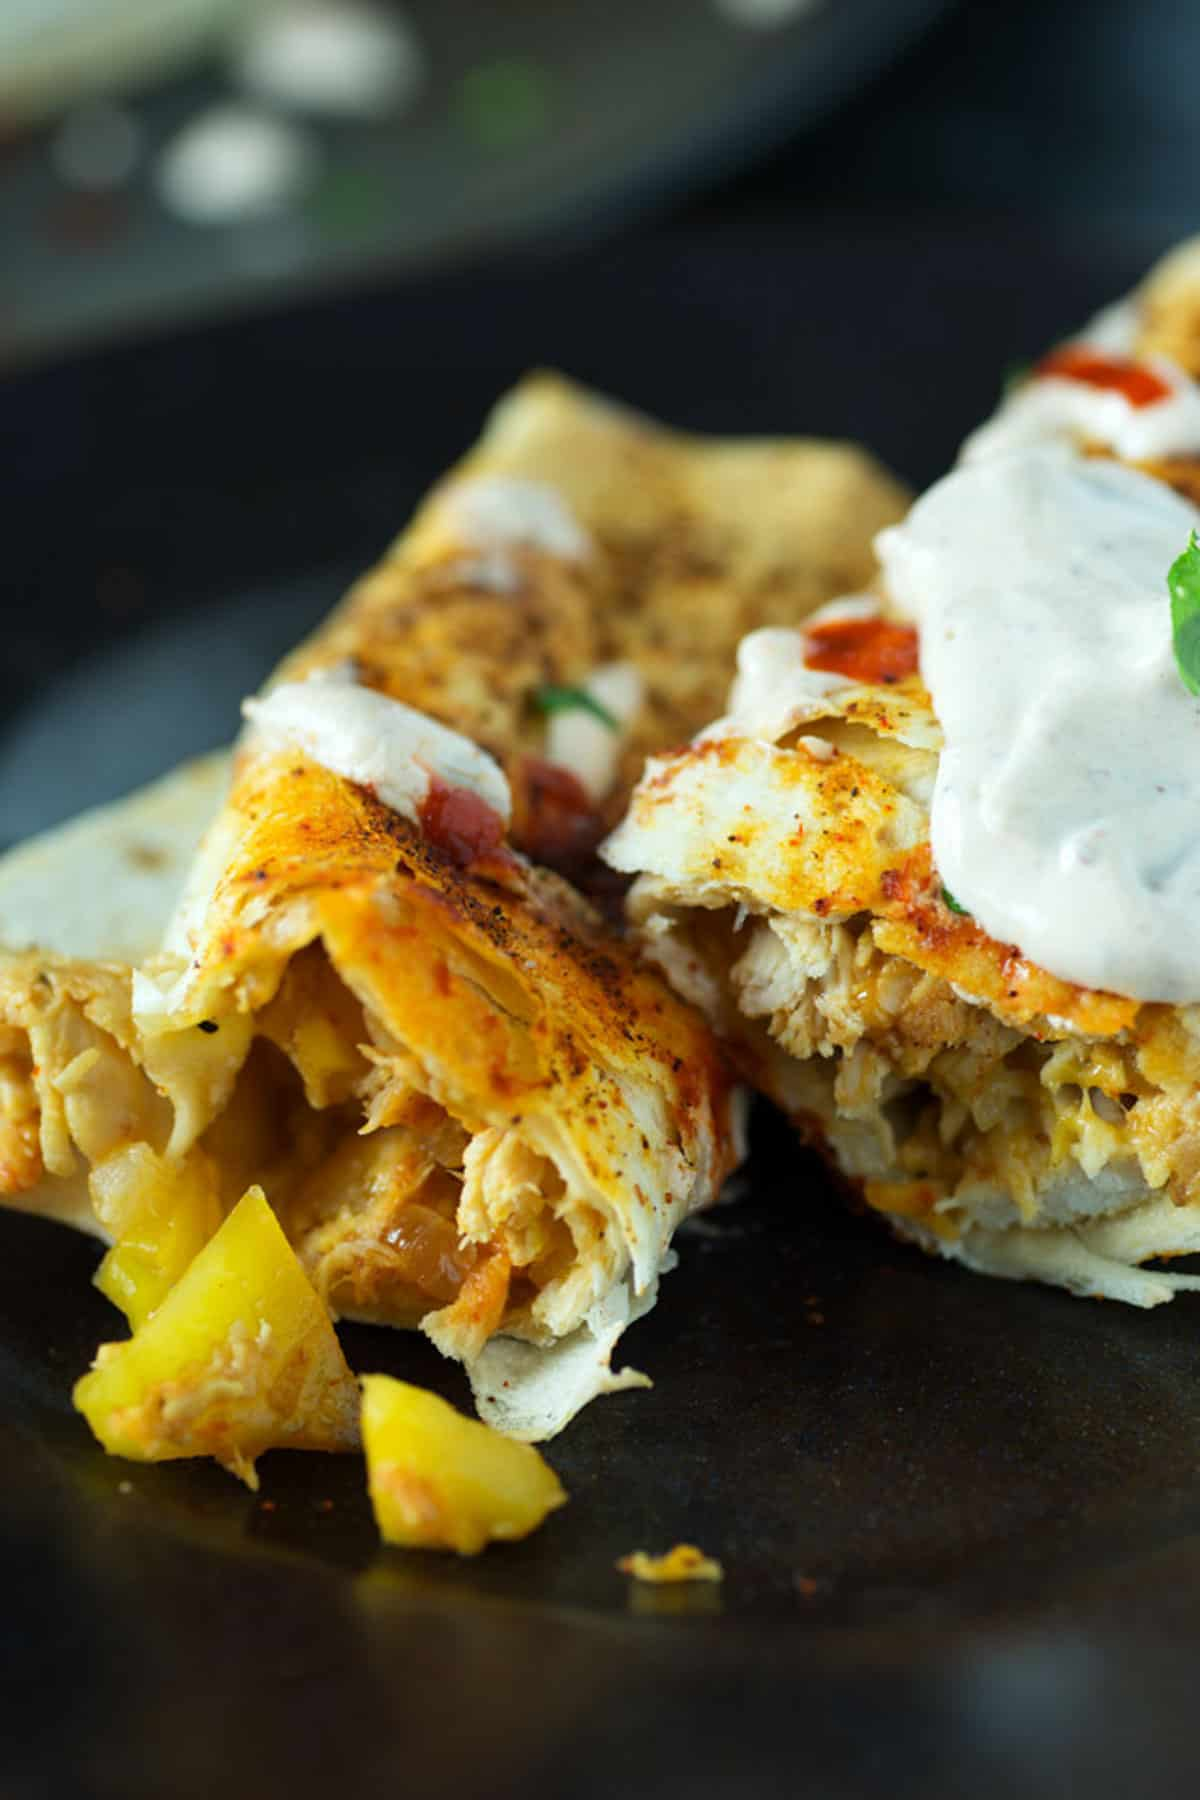 Two peach and chicken taquitos on a plate.